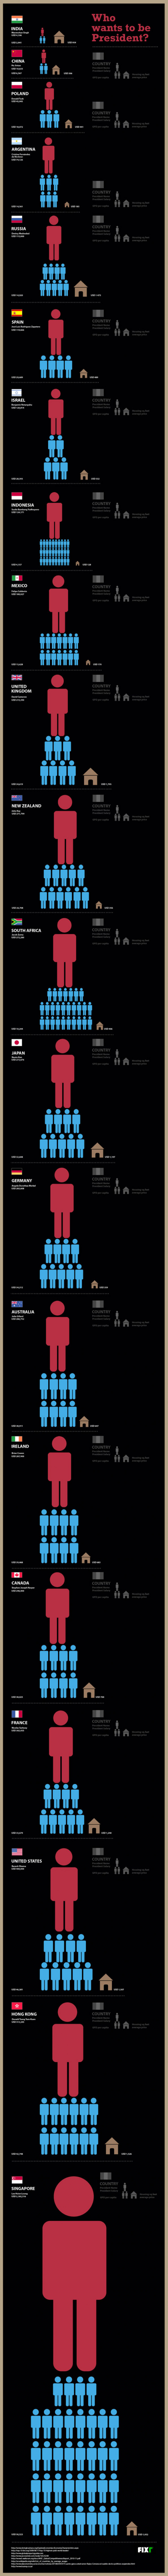 Who Wants to Be President? Infographic